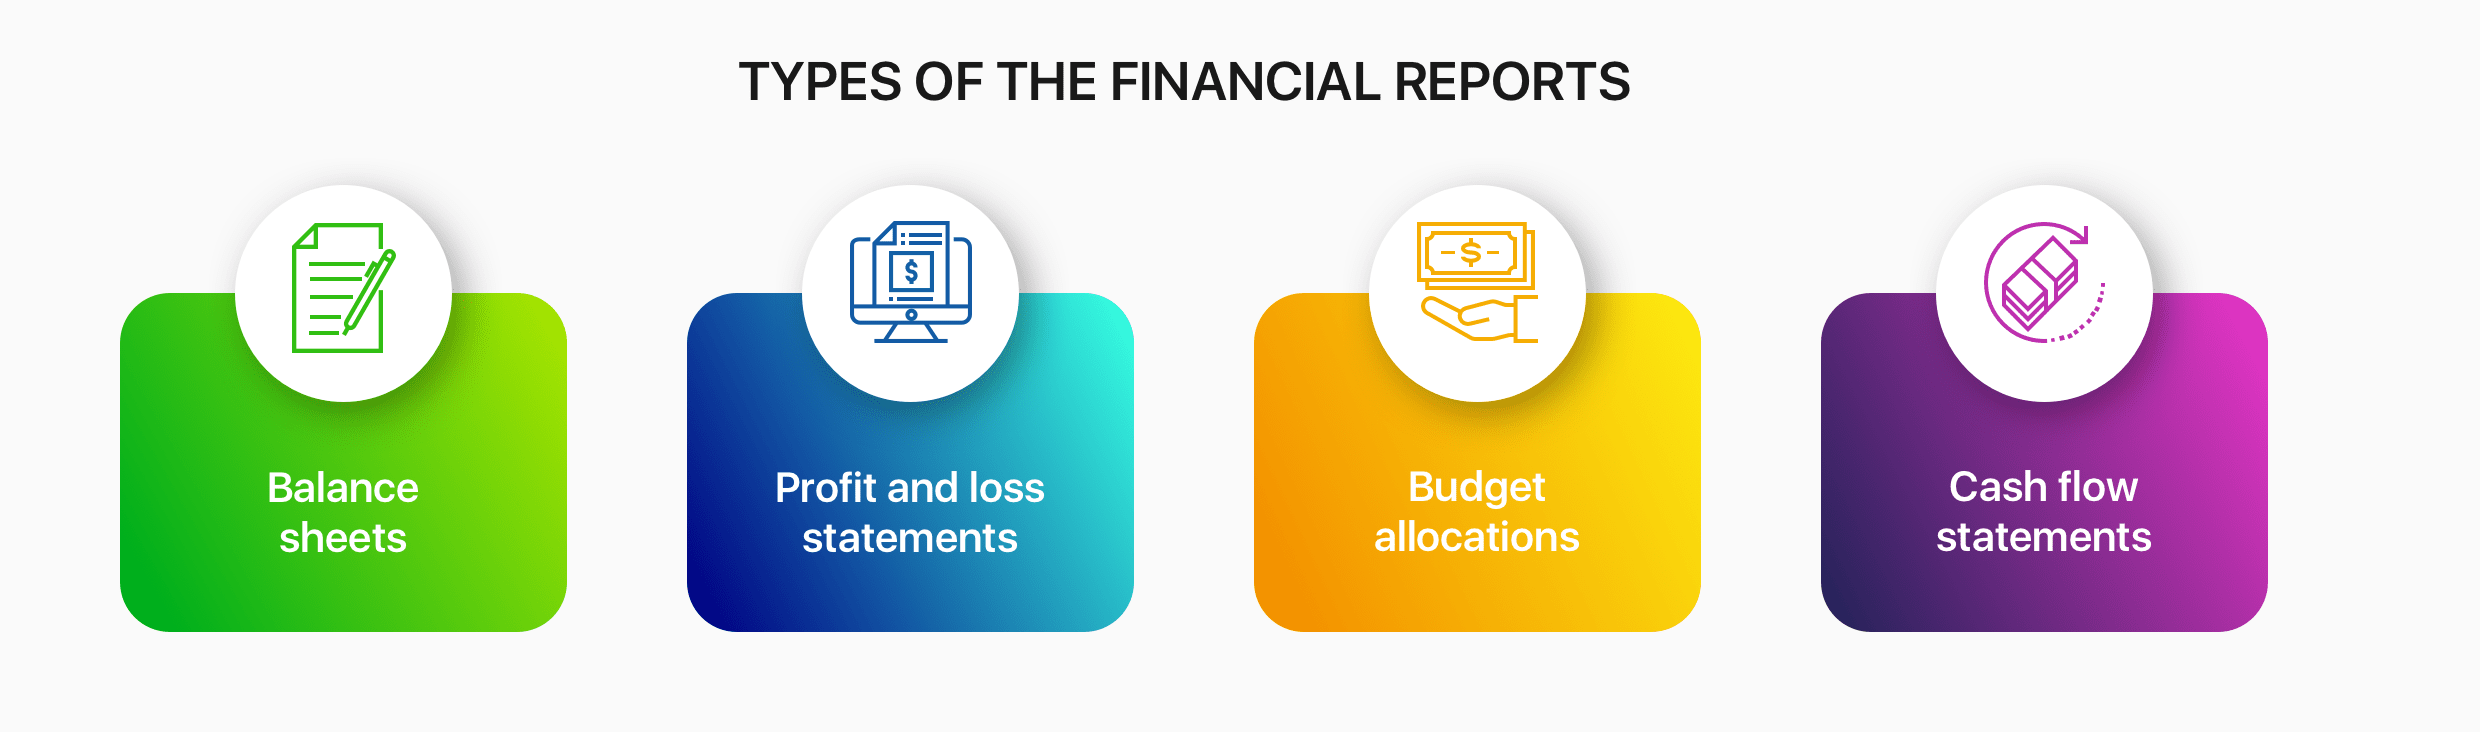 types of the financial reports